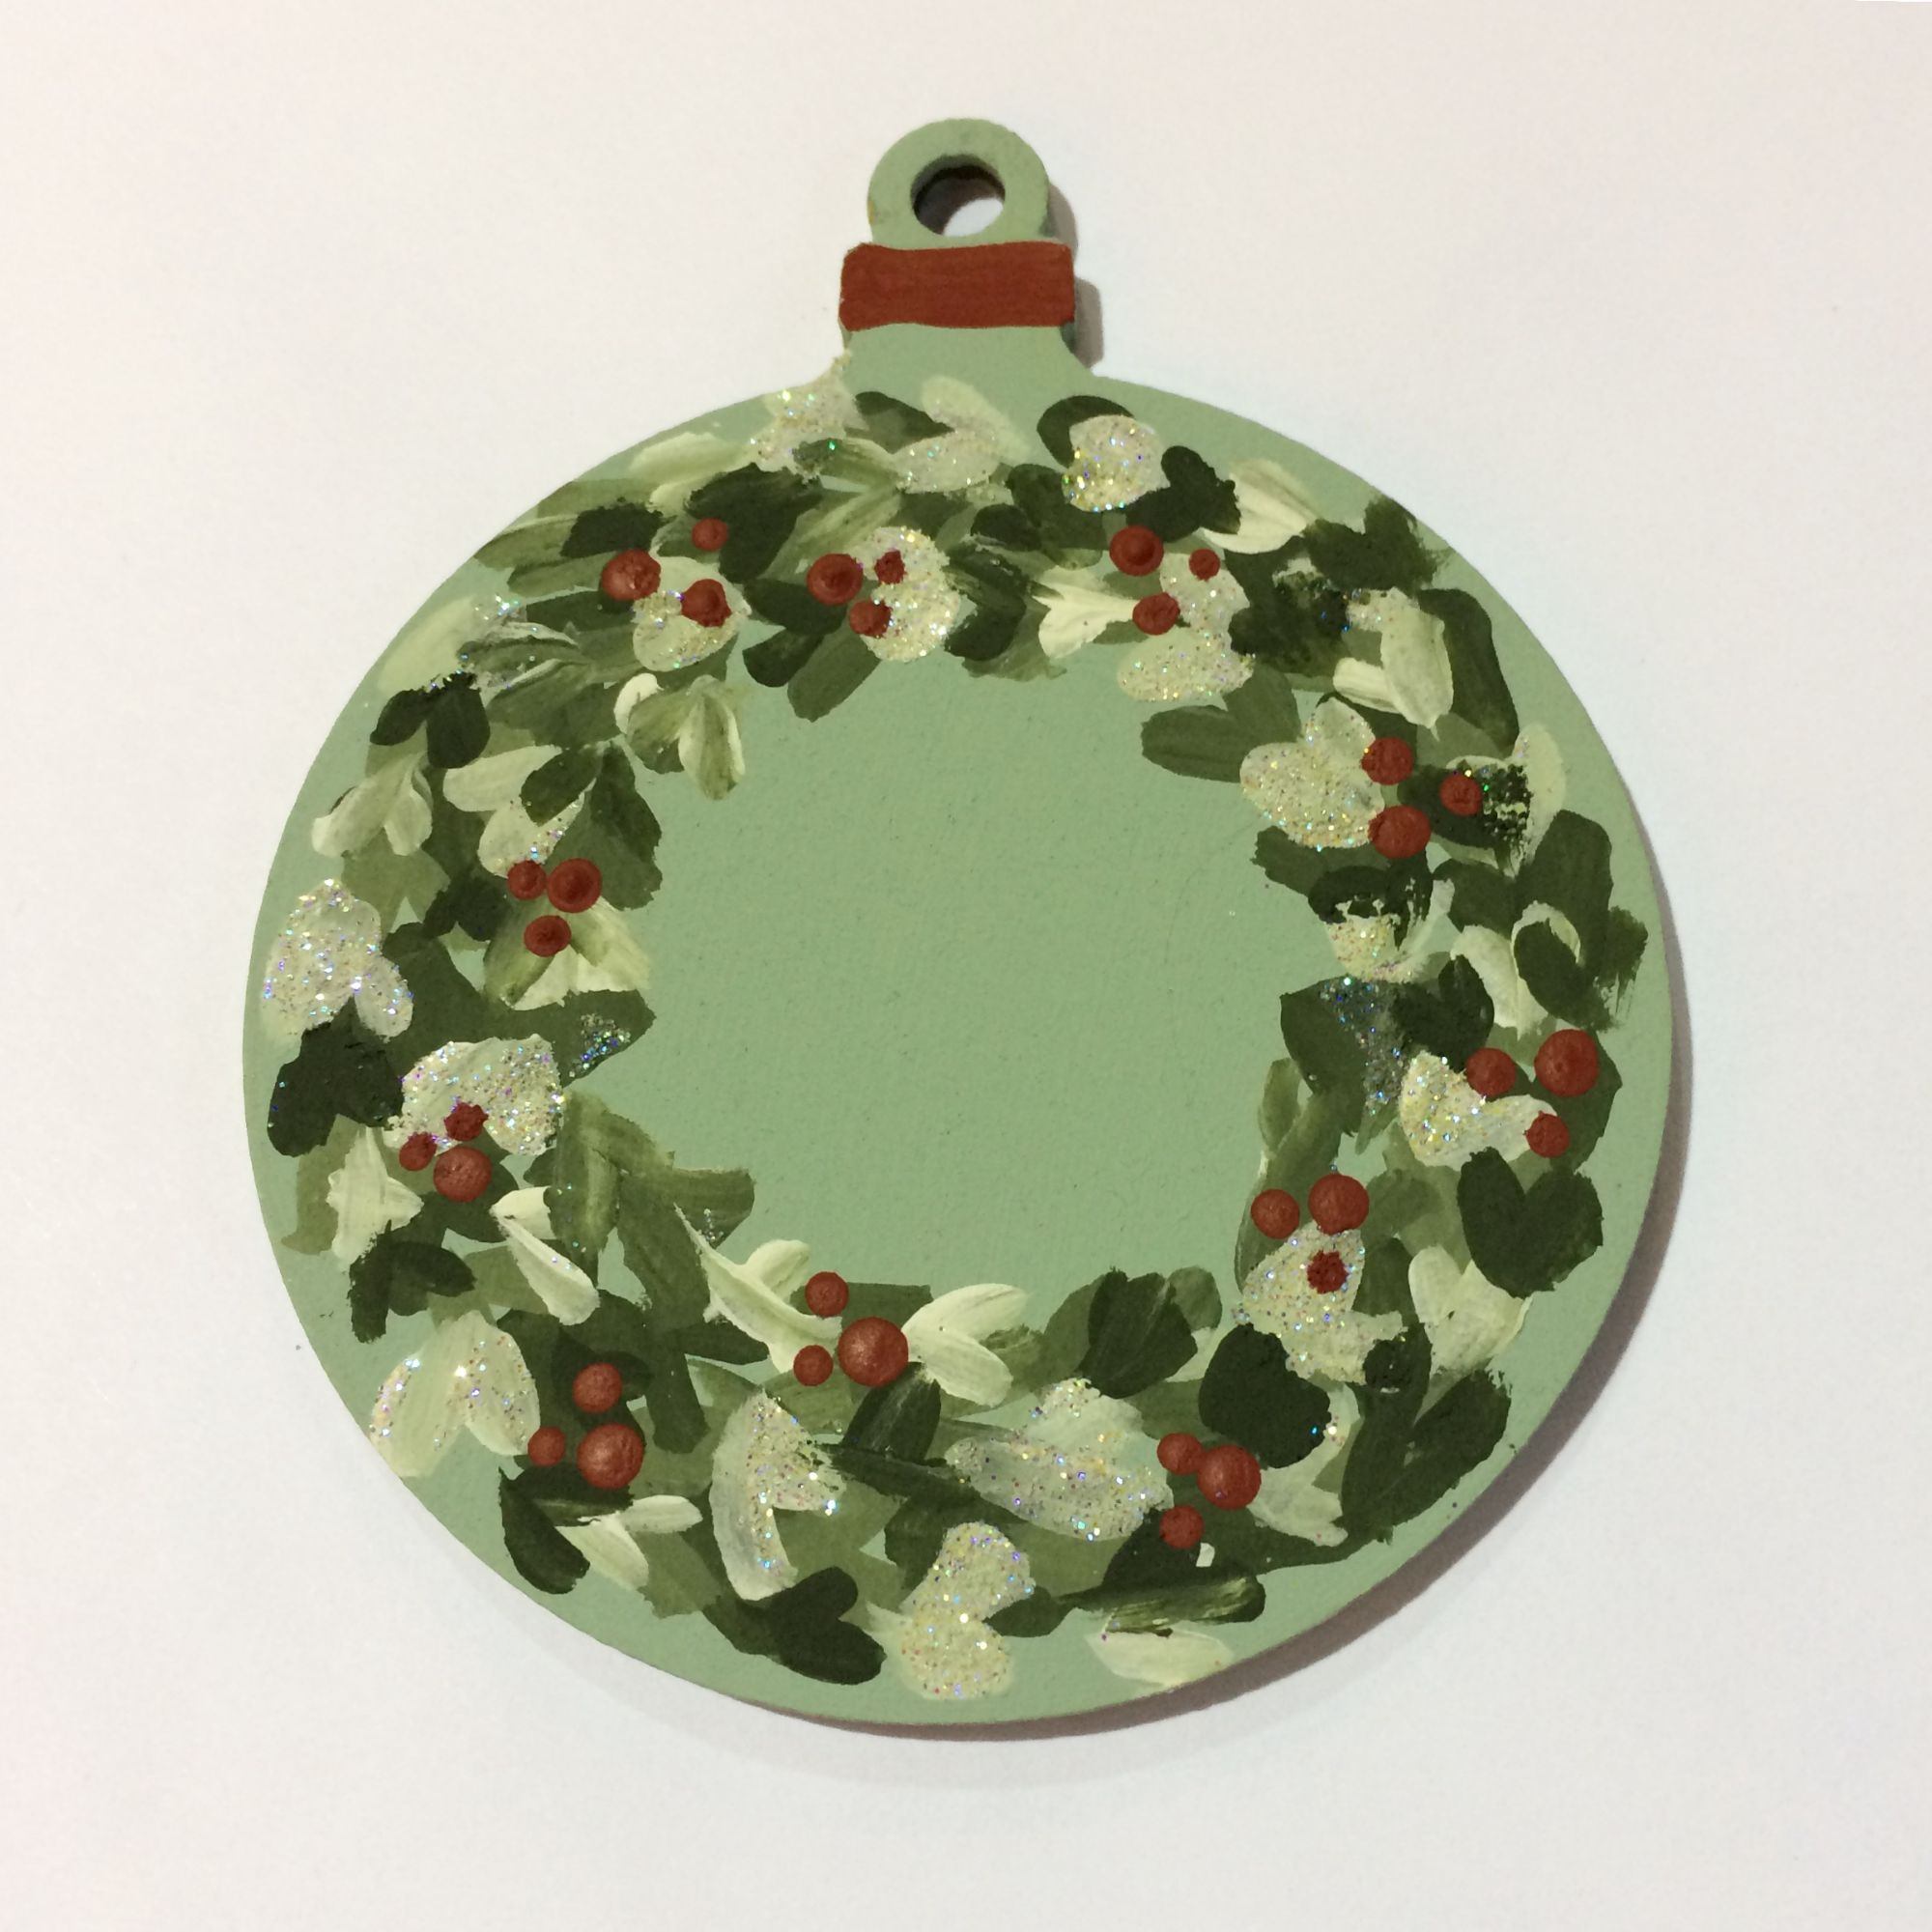 Festive Folk Art Painting Workshop - Tree Decorations